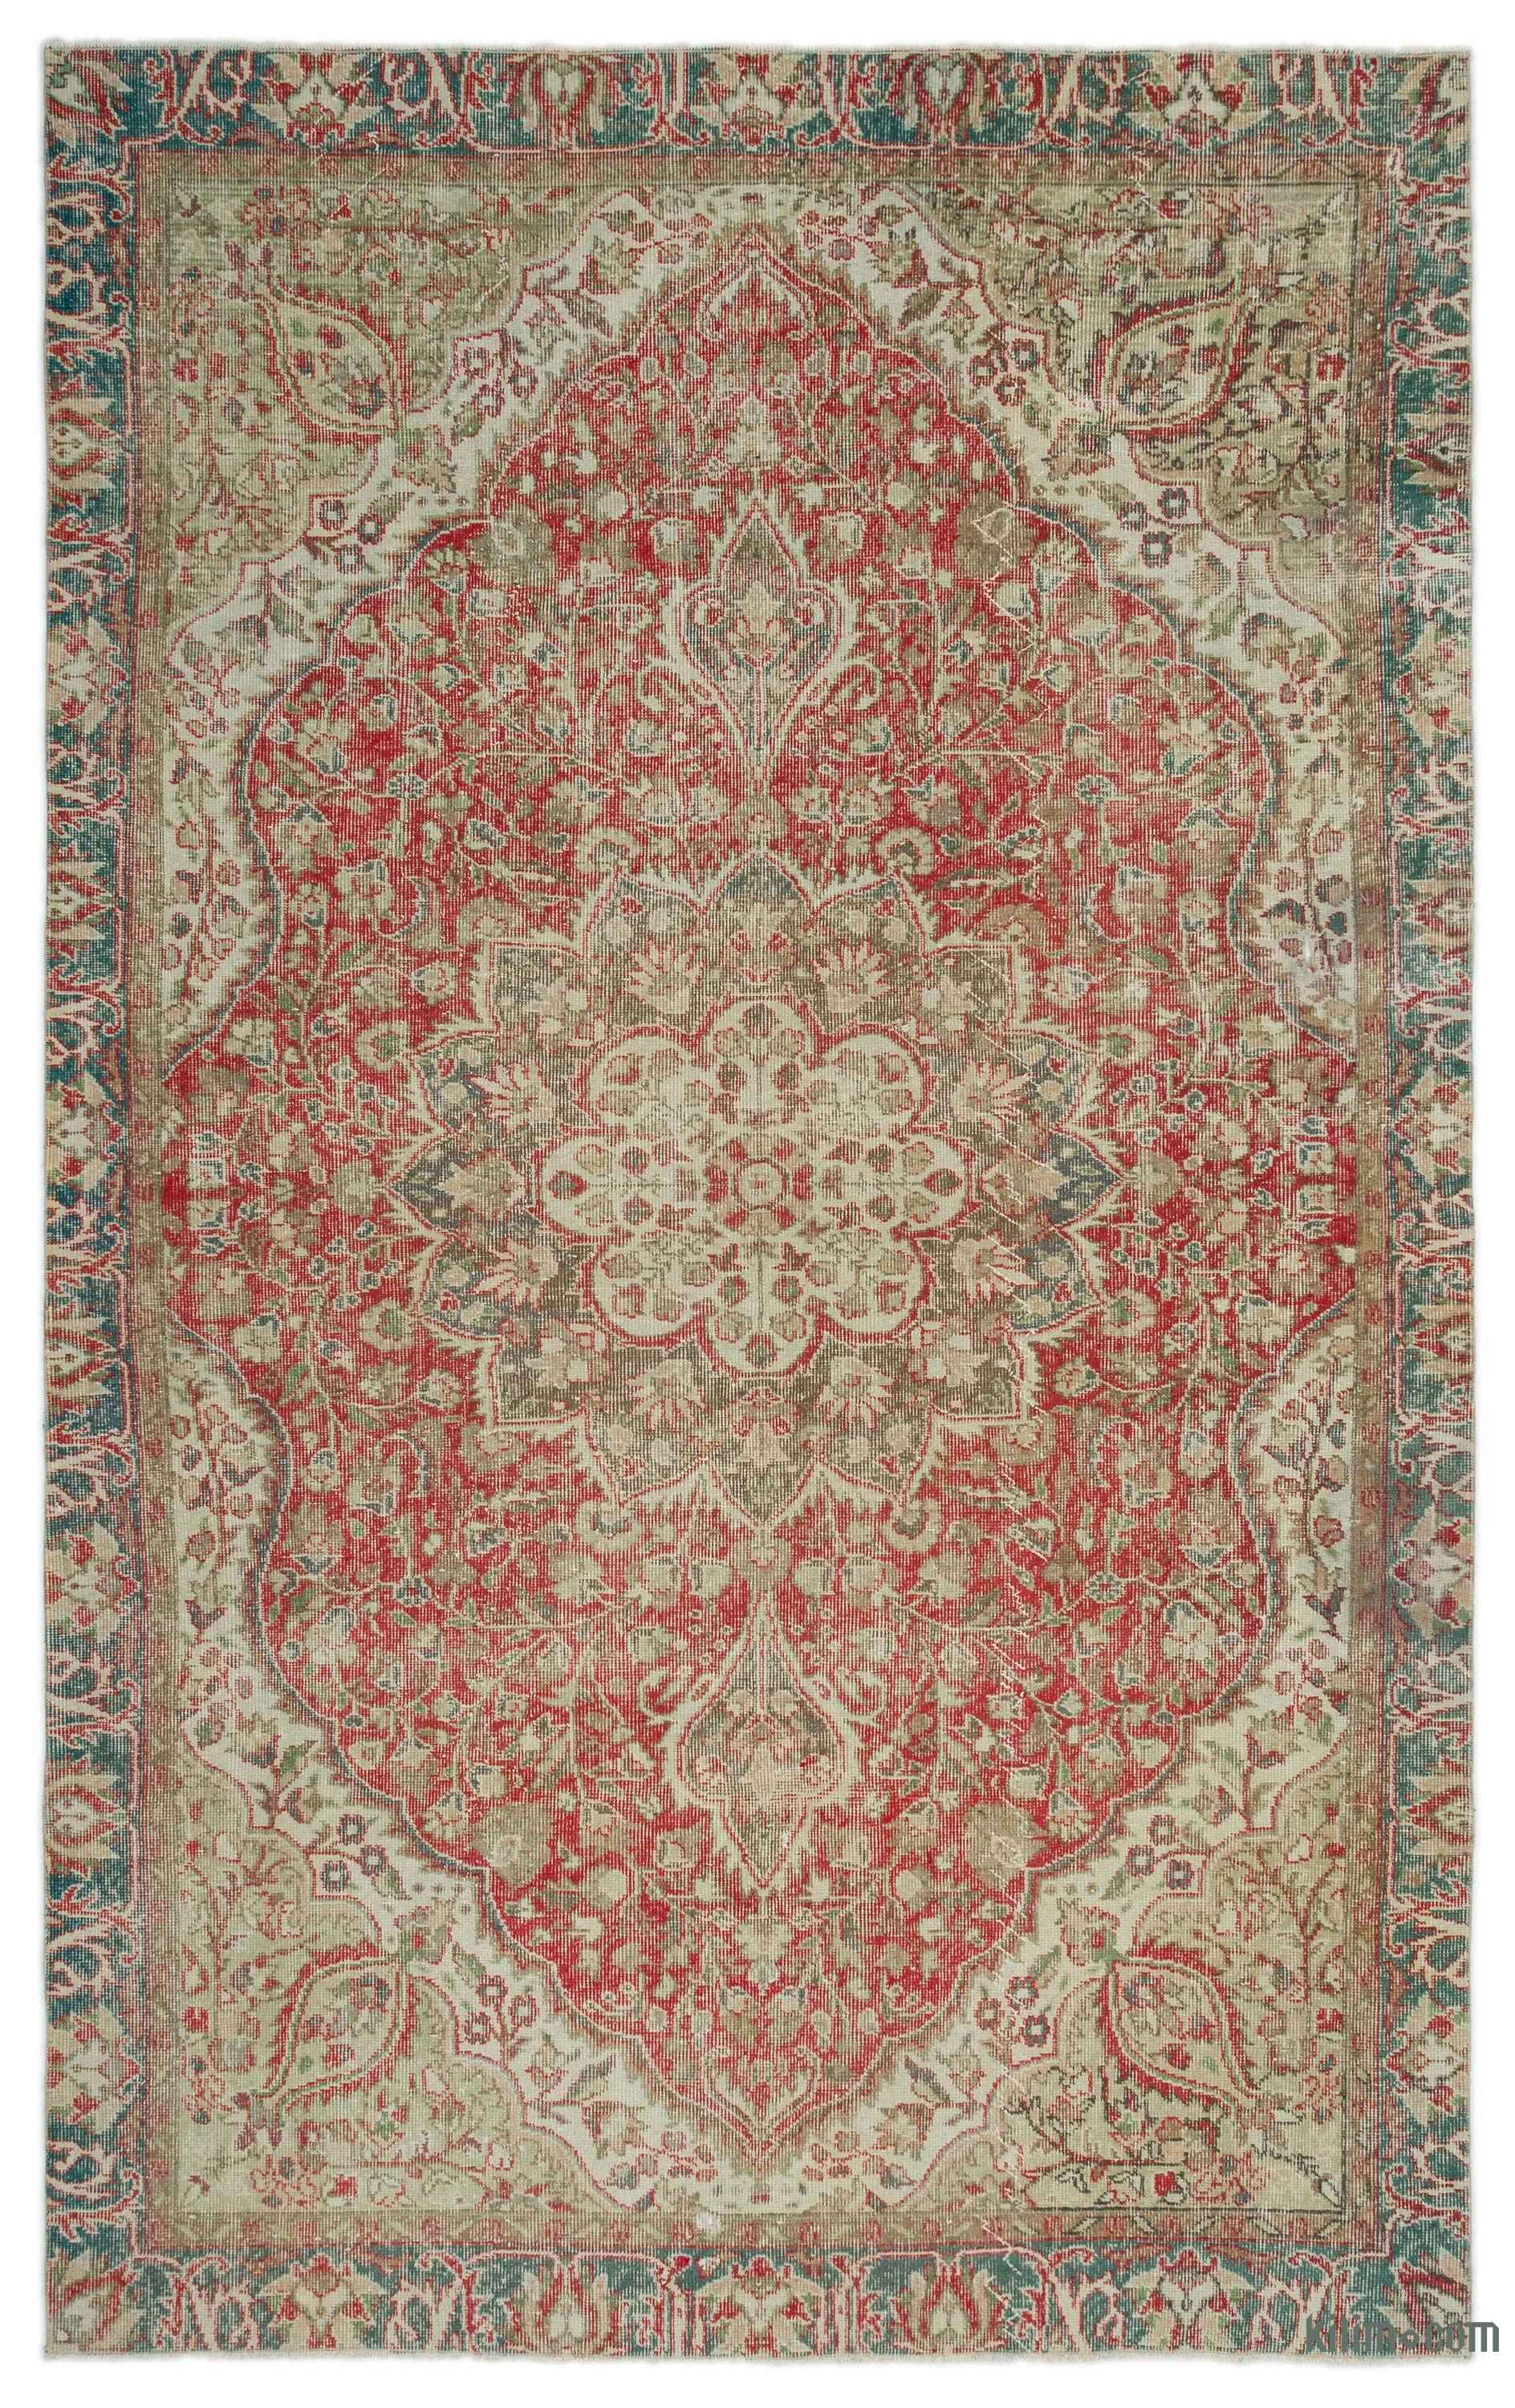 Turkish Vintage Area Rug 6 X 9 9 72 In X 117 In With